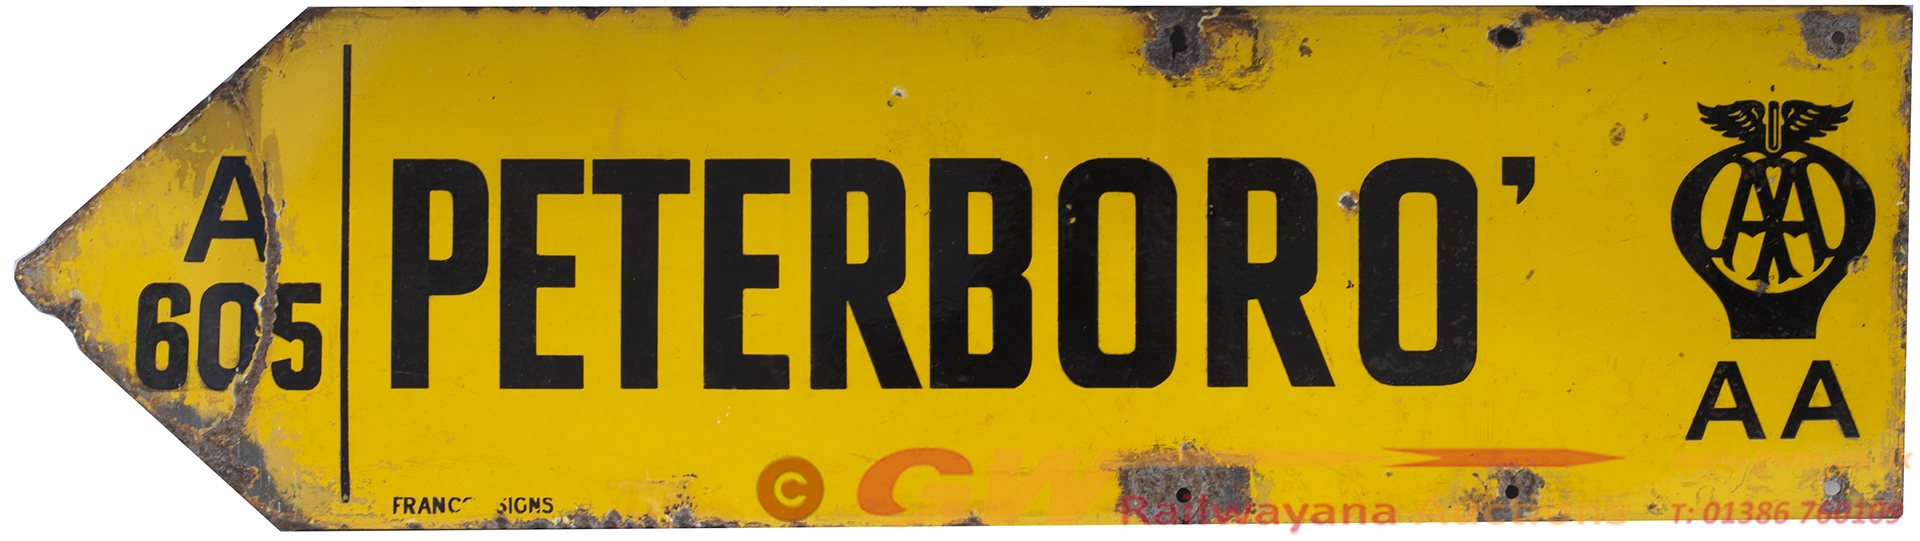 Motoring Enamel Sign AA PETERBORO a605. Double